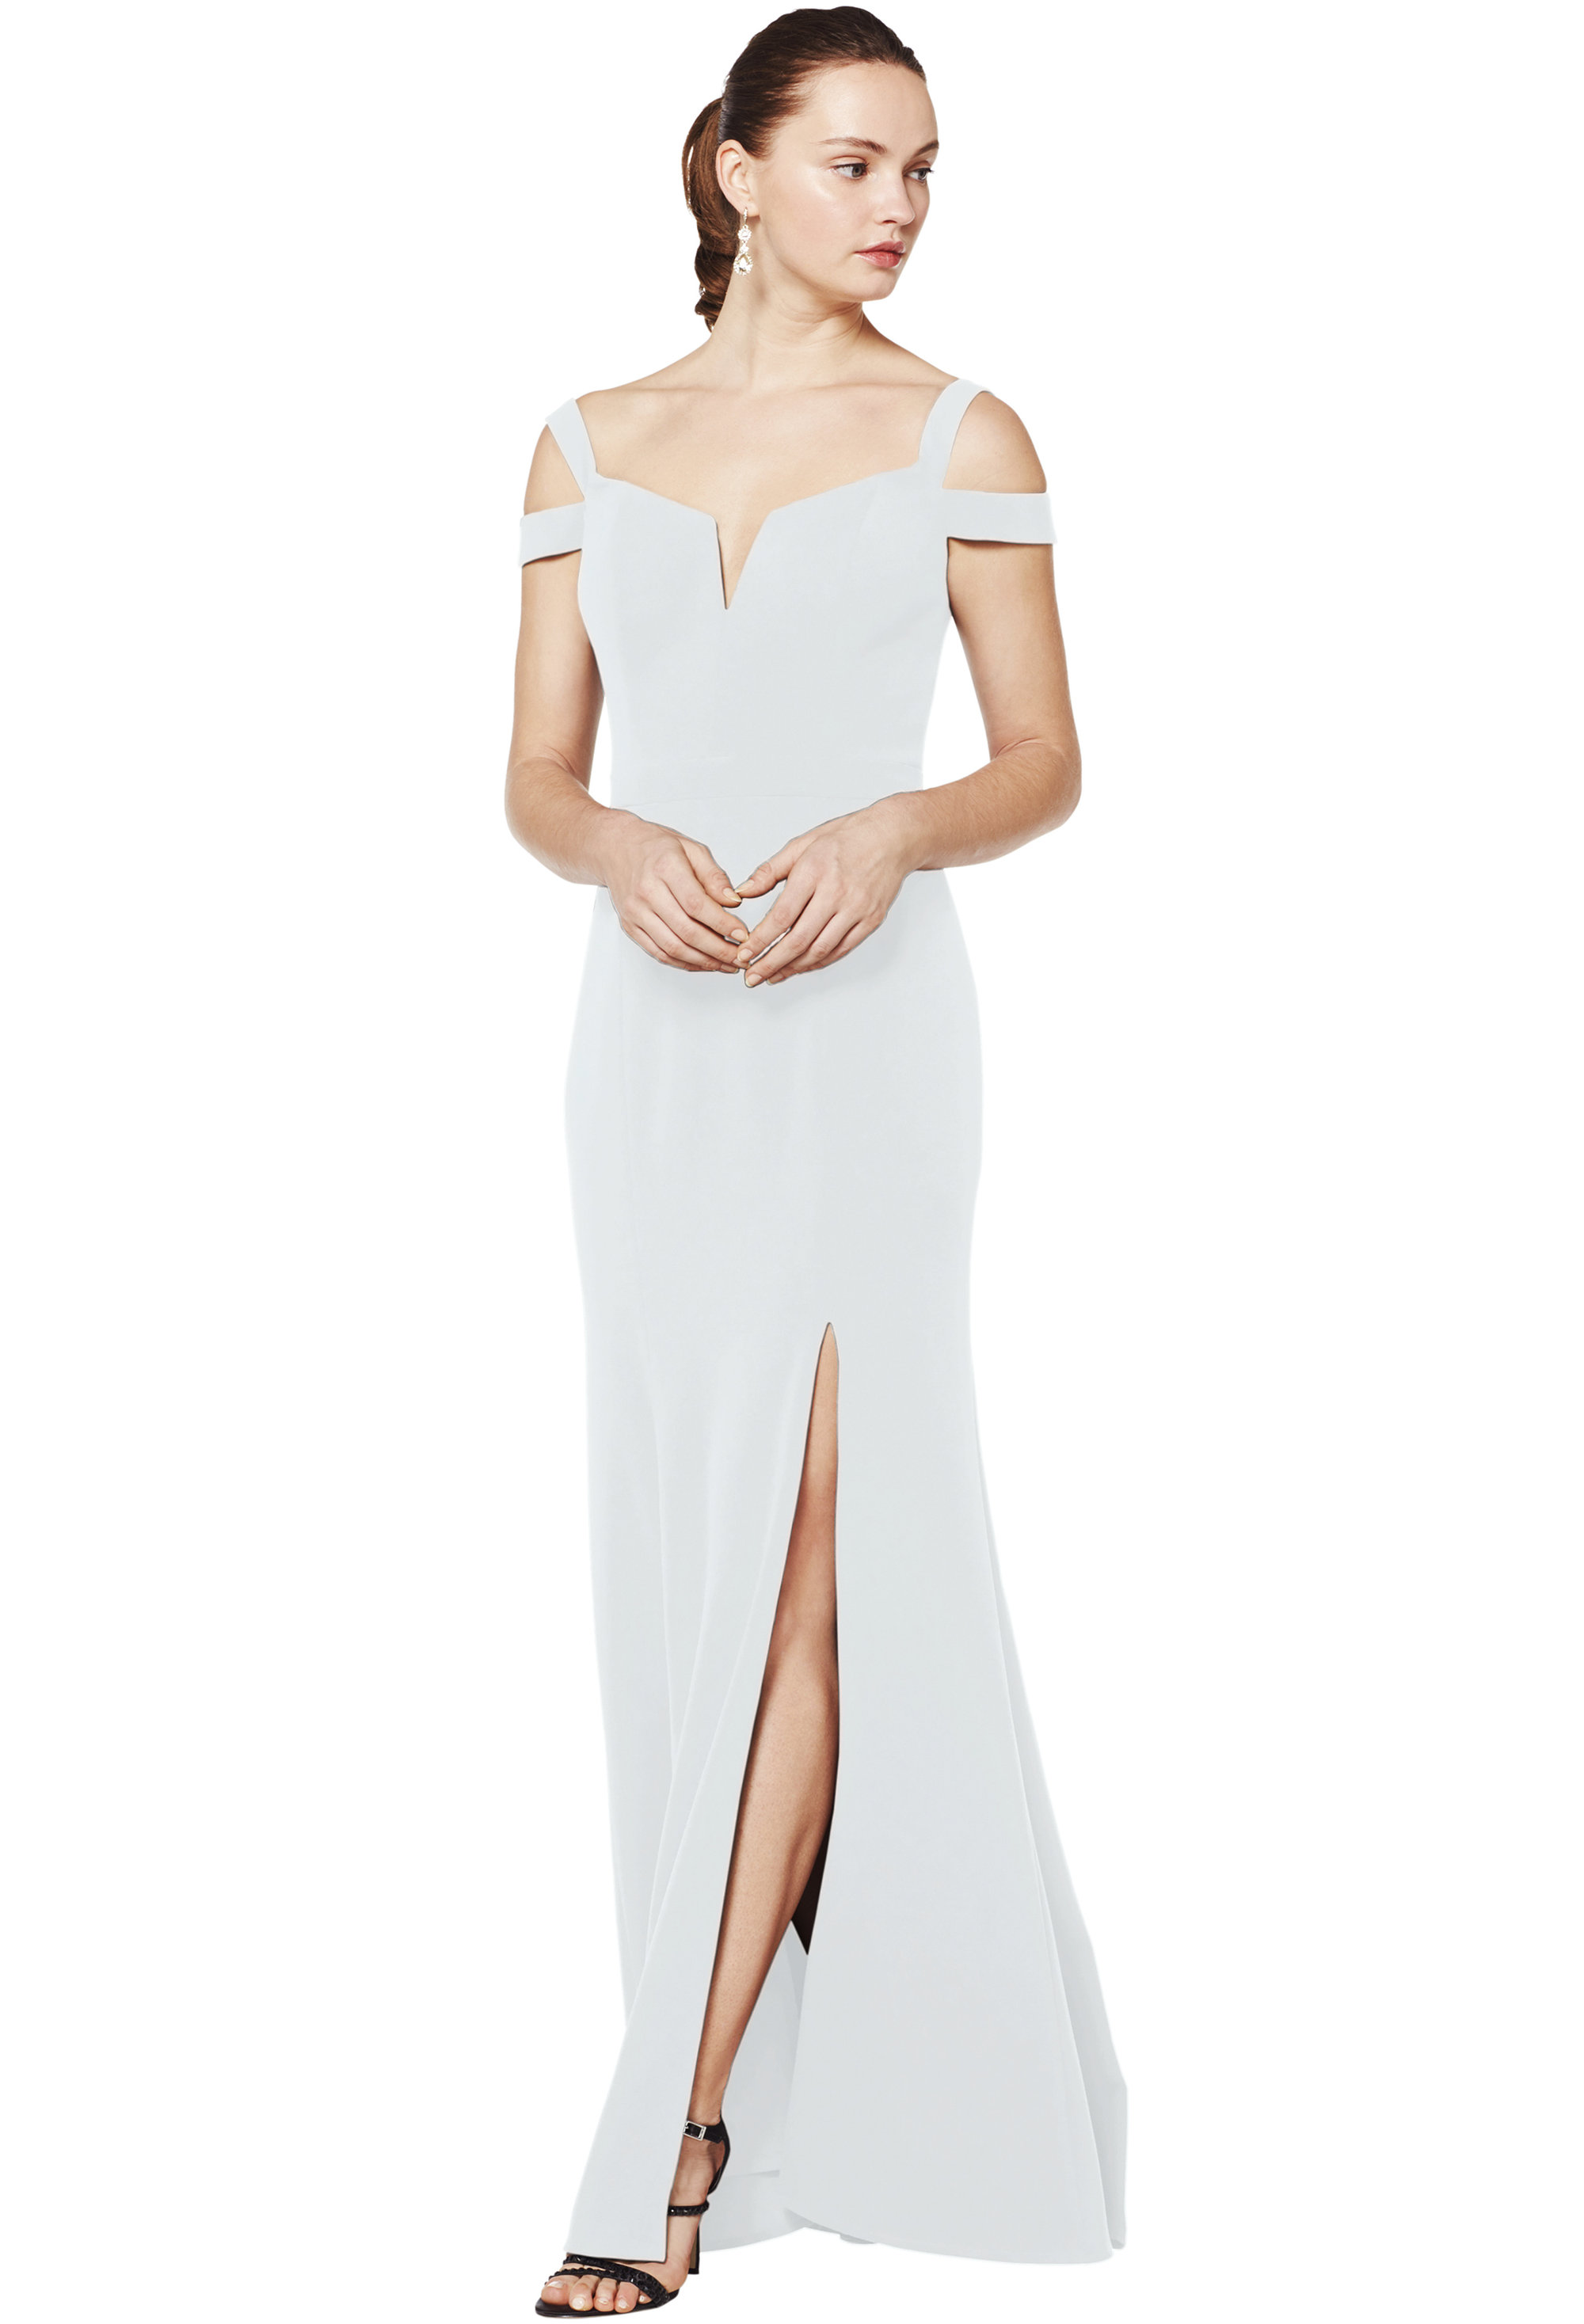 Bill Levkoff PALE BLUE Stretch Crepe Off The Shoulder A-line gown, $230.00 Front